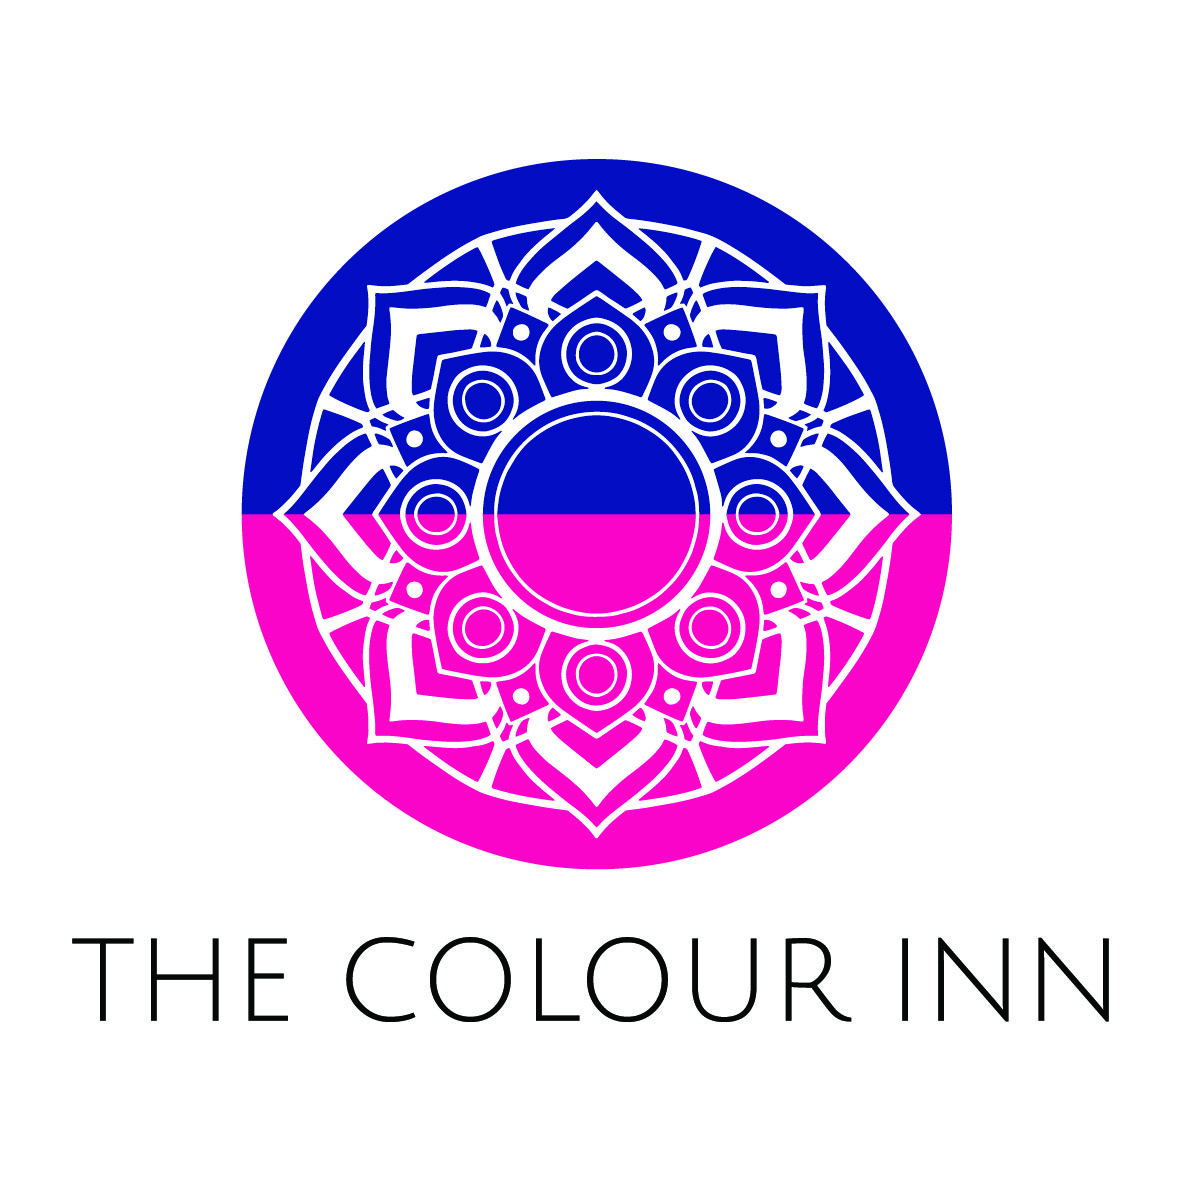 The Colour Inn